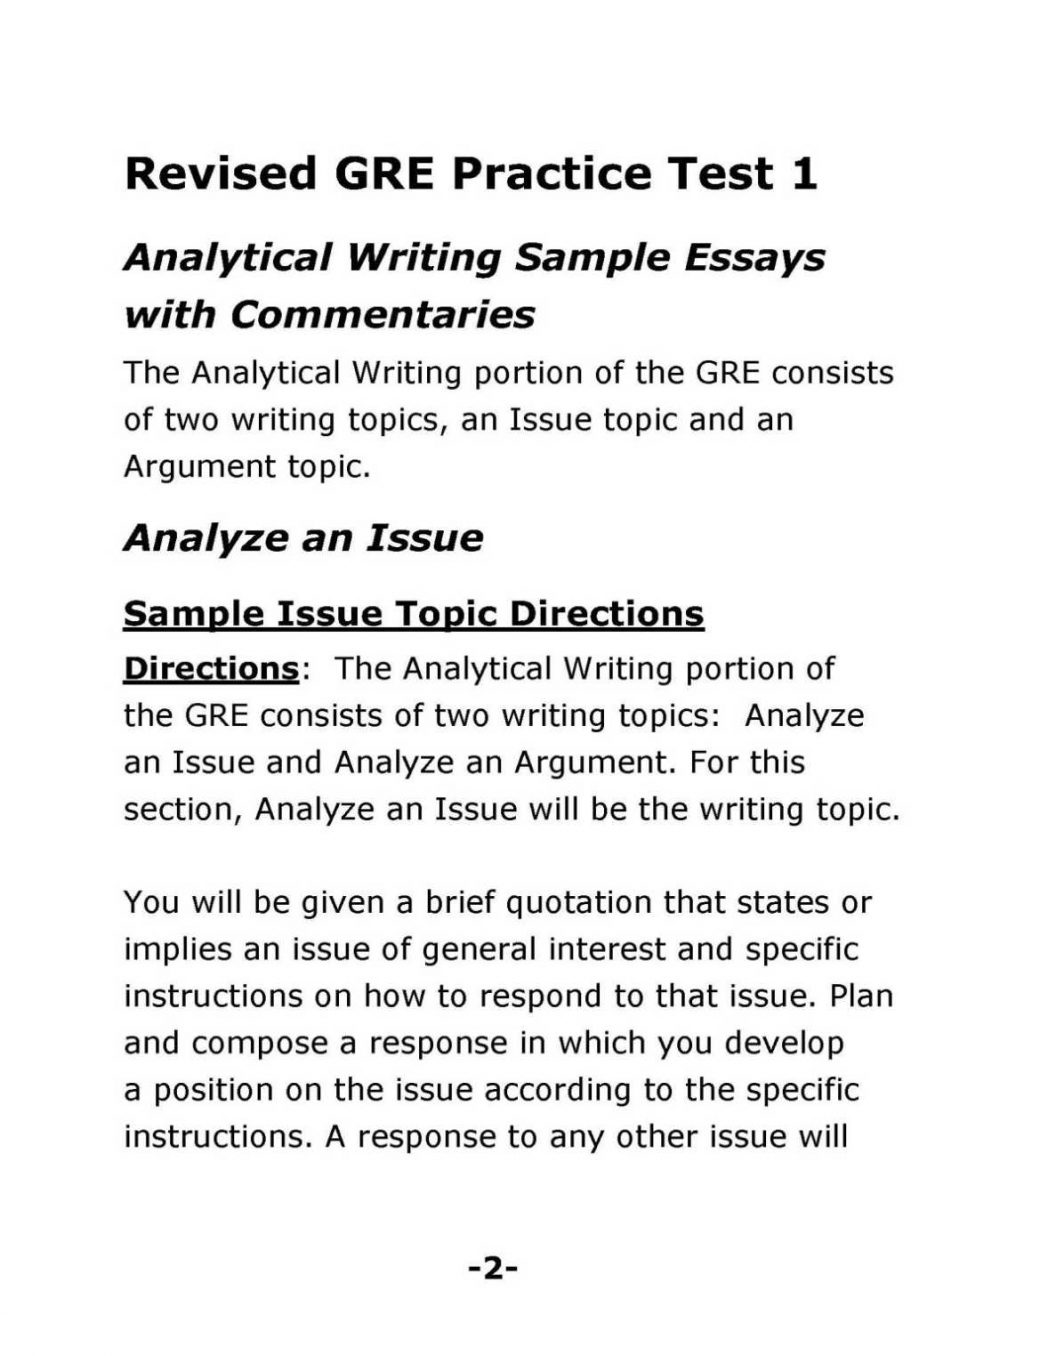 005 Essay Example Gre Issue Sample Topics For Essays Diversity Argumentative Test Papers With Soluti Responses Prompts Template Chart Pdf Awa Unusual 6 Ets Full